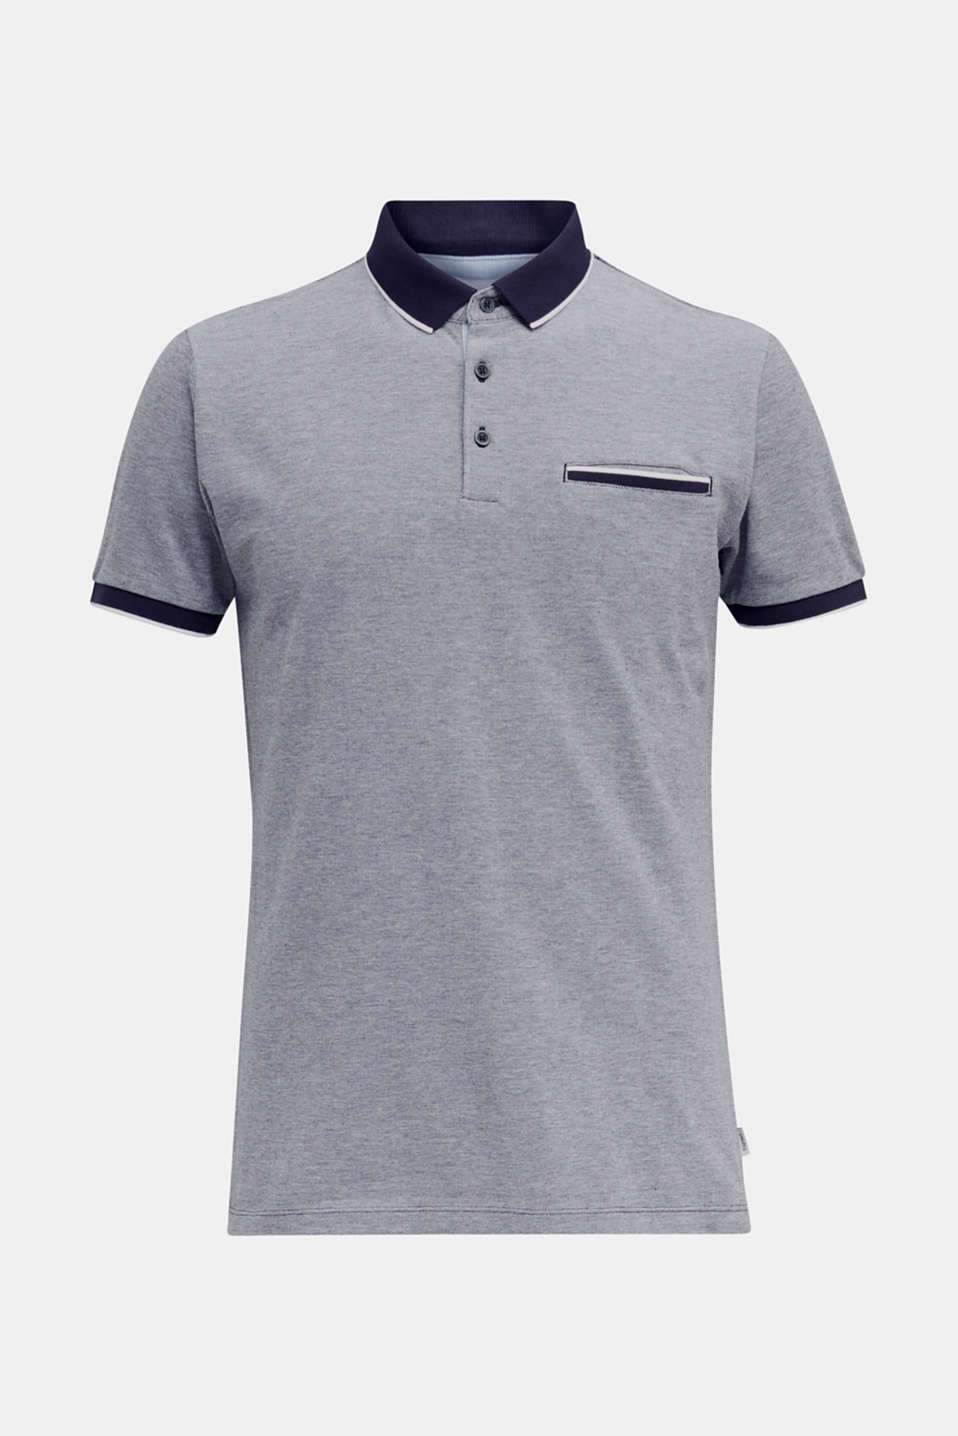 Piqué polo shirt, 100% organic cotton, NAVY 2, detail image number 7